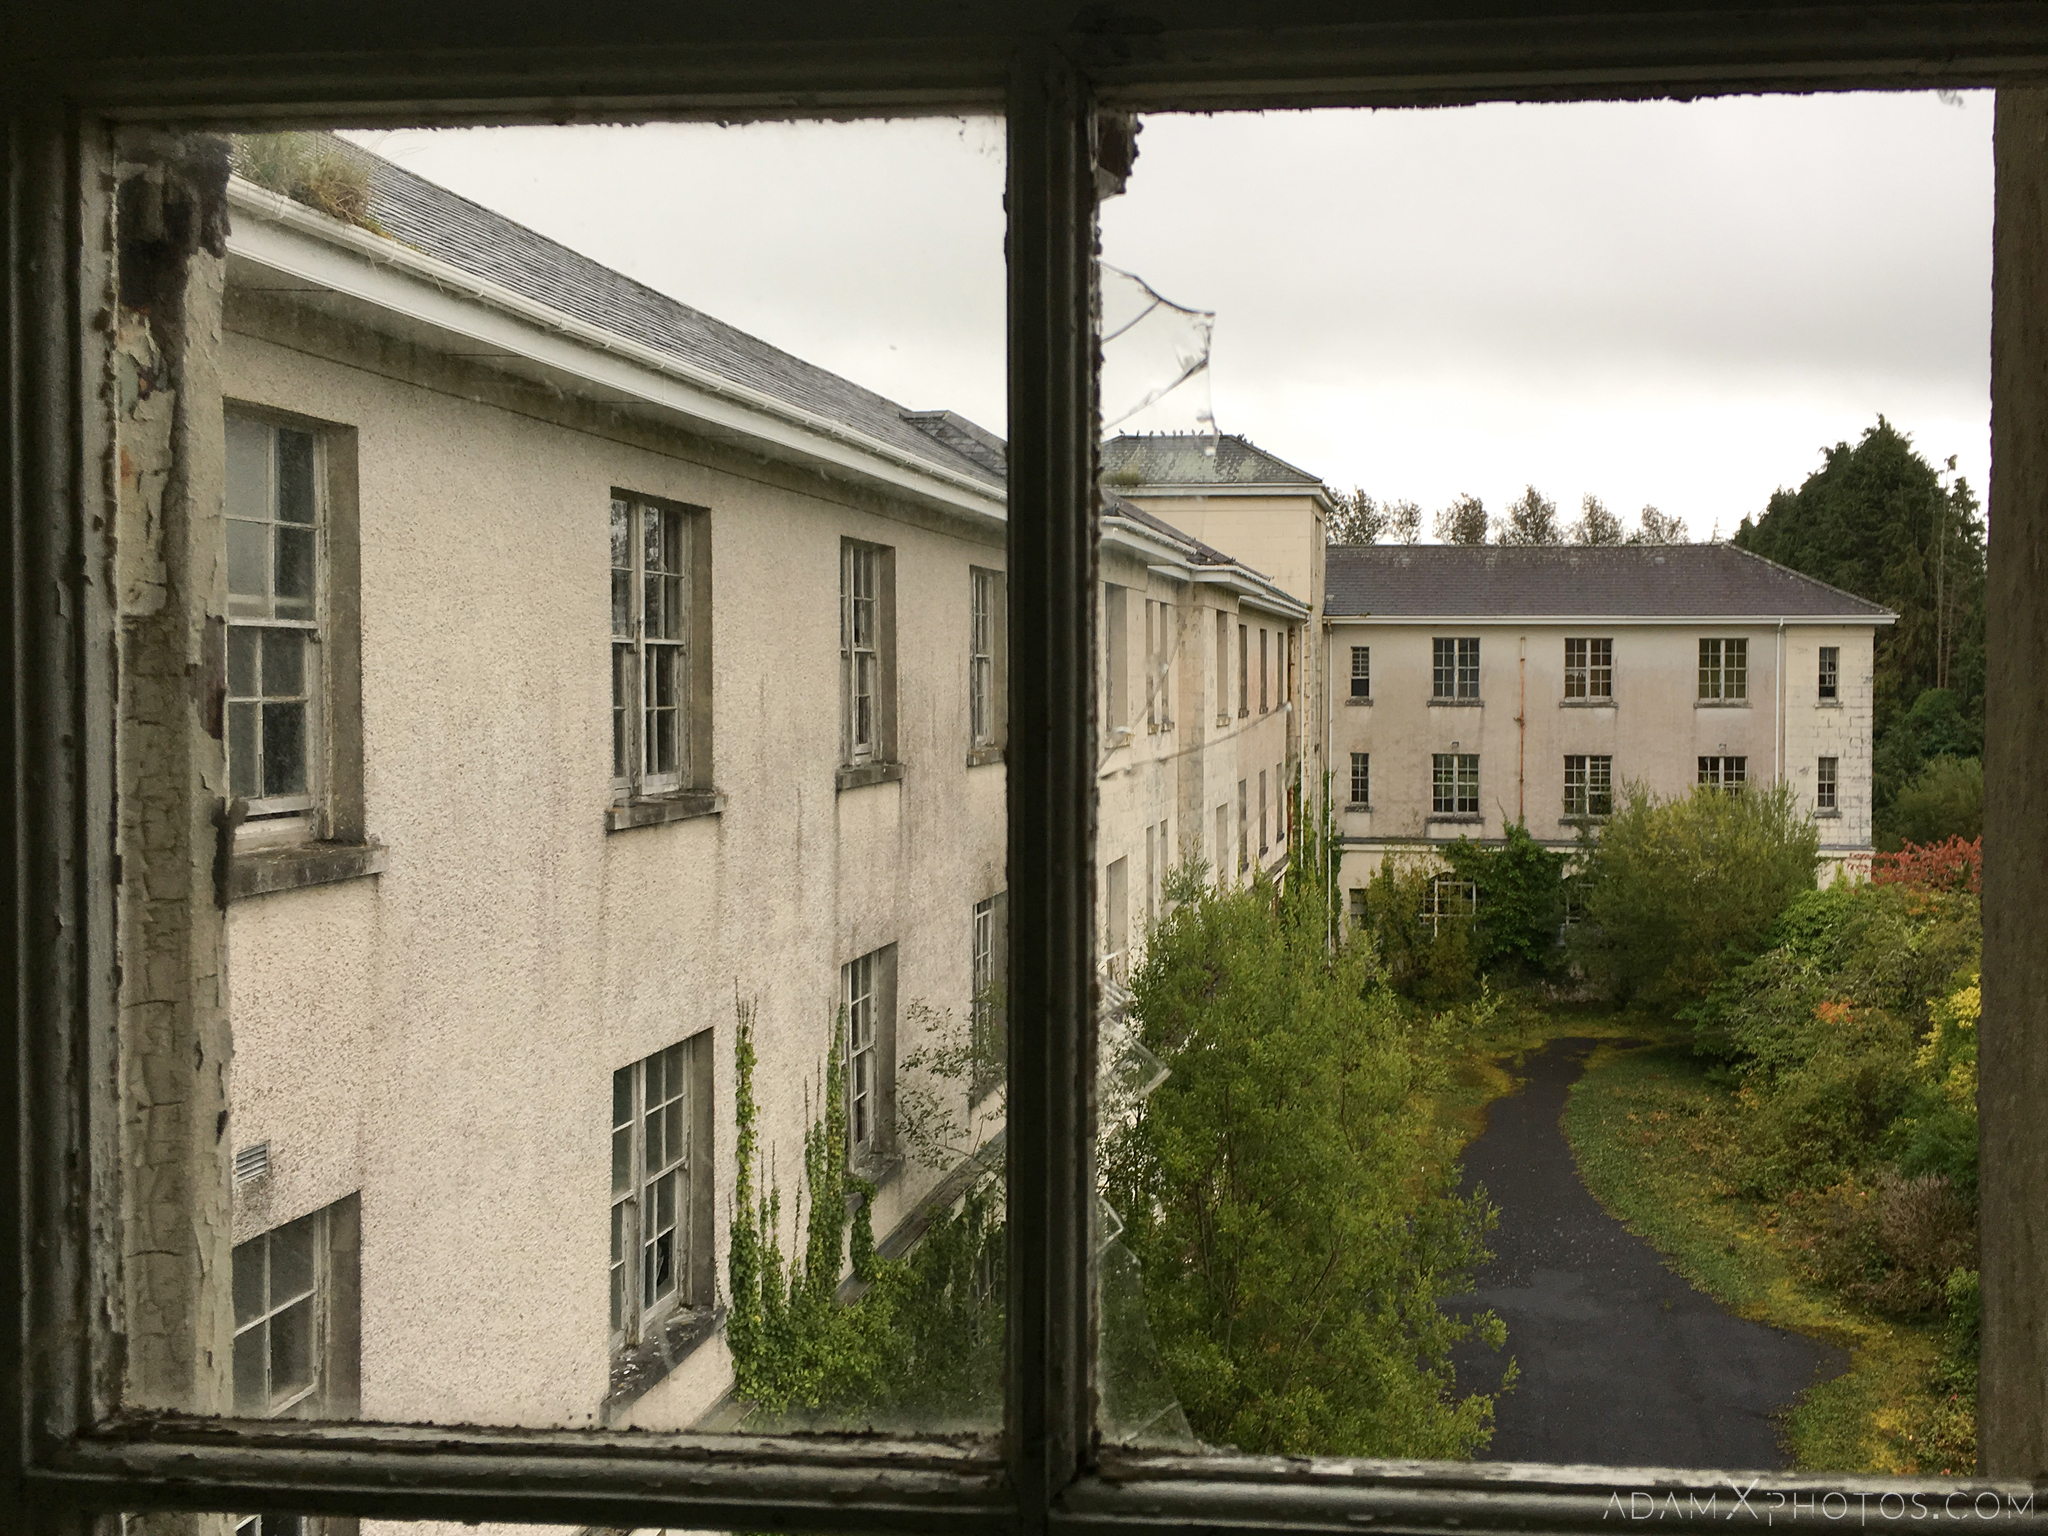 view through window De Salle College School Colaiste Iosagain Ballyvourney County Cork Adam X Urbex Urban Exploration Ireland Access 2017 Abandoned decay lost forgotten derelict location creepy haunting eerie